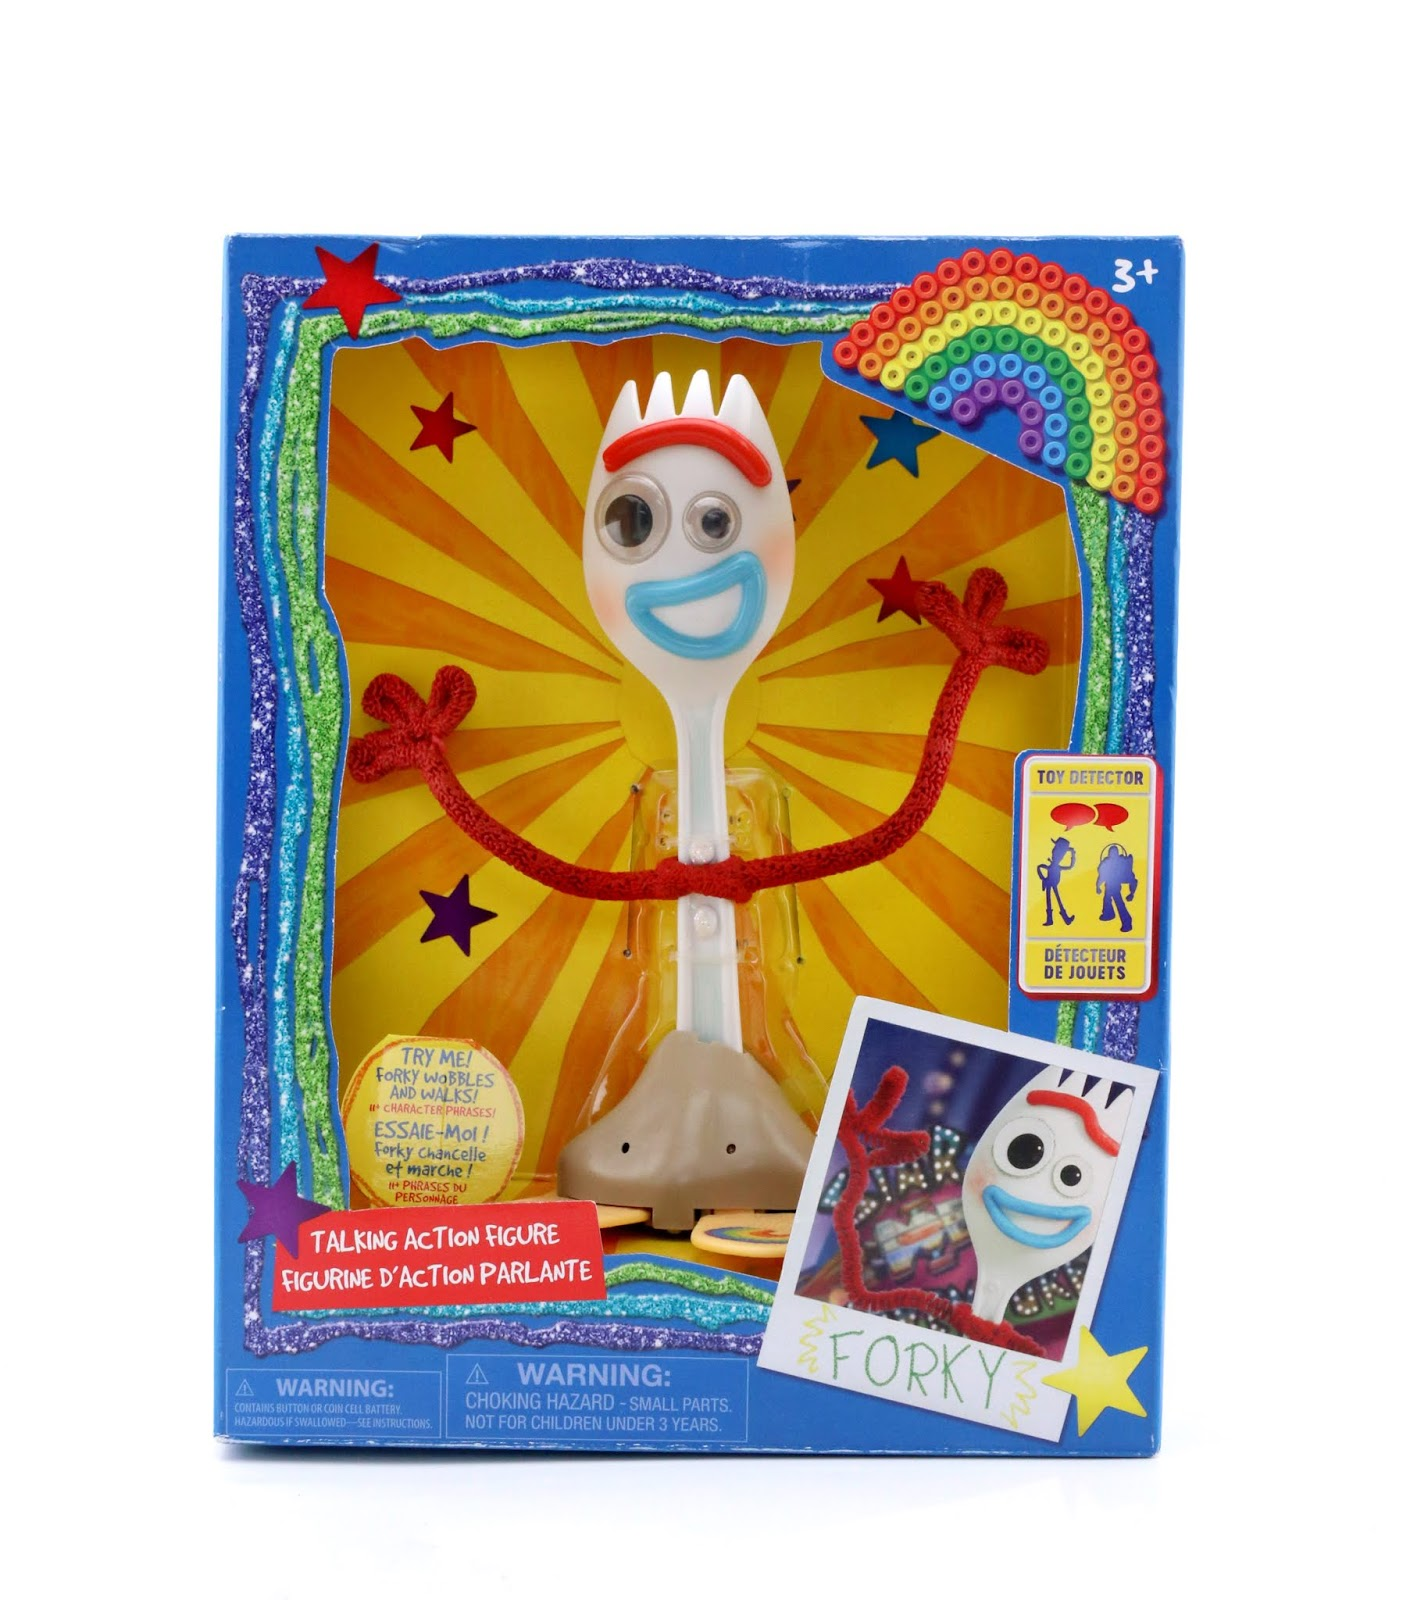 disney store toy story 4 forky talking action figure review